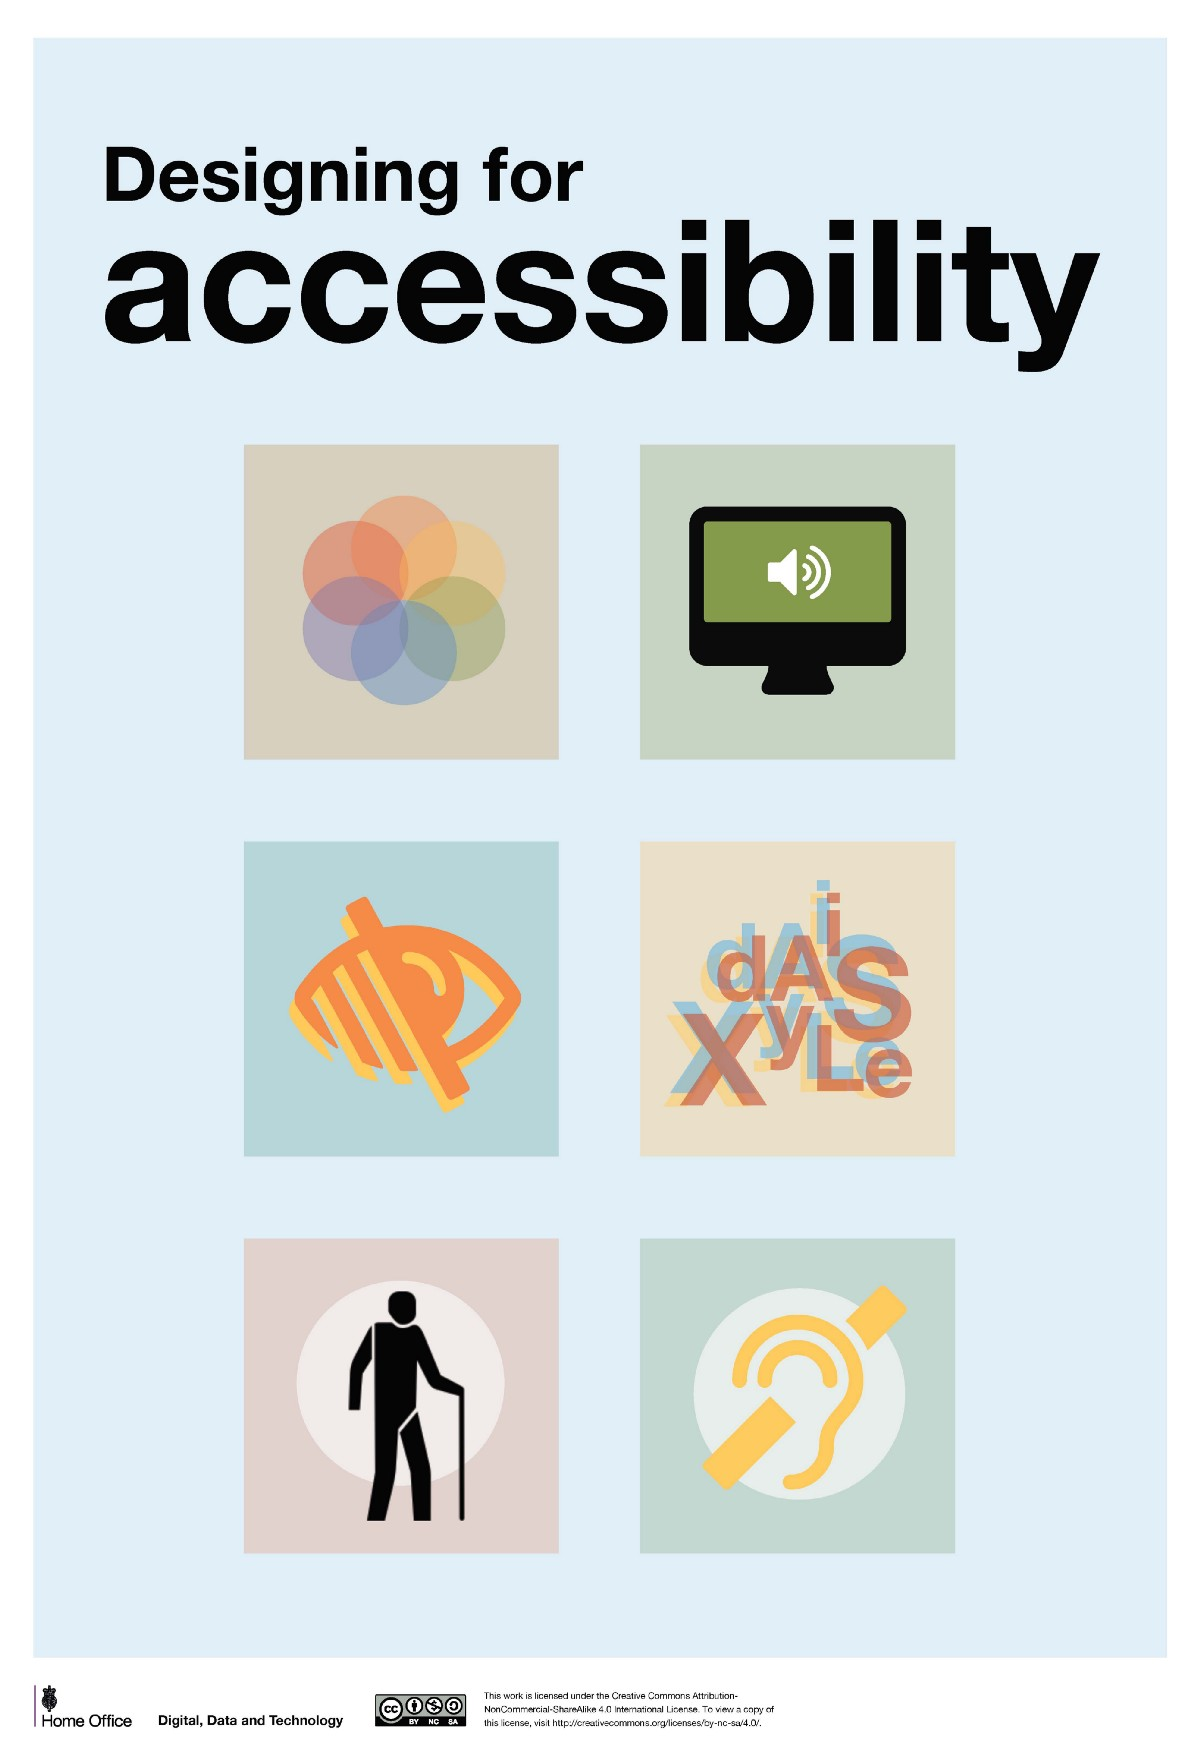 Poster design jobs uk - Uk Services Having Access To All The Talented Designers And Developers There Is Inspiring There S Also The Disability Network With People Like Chris Moore